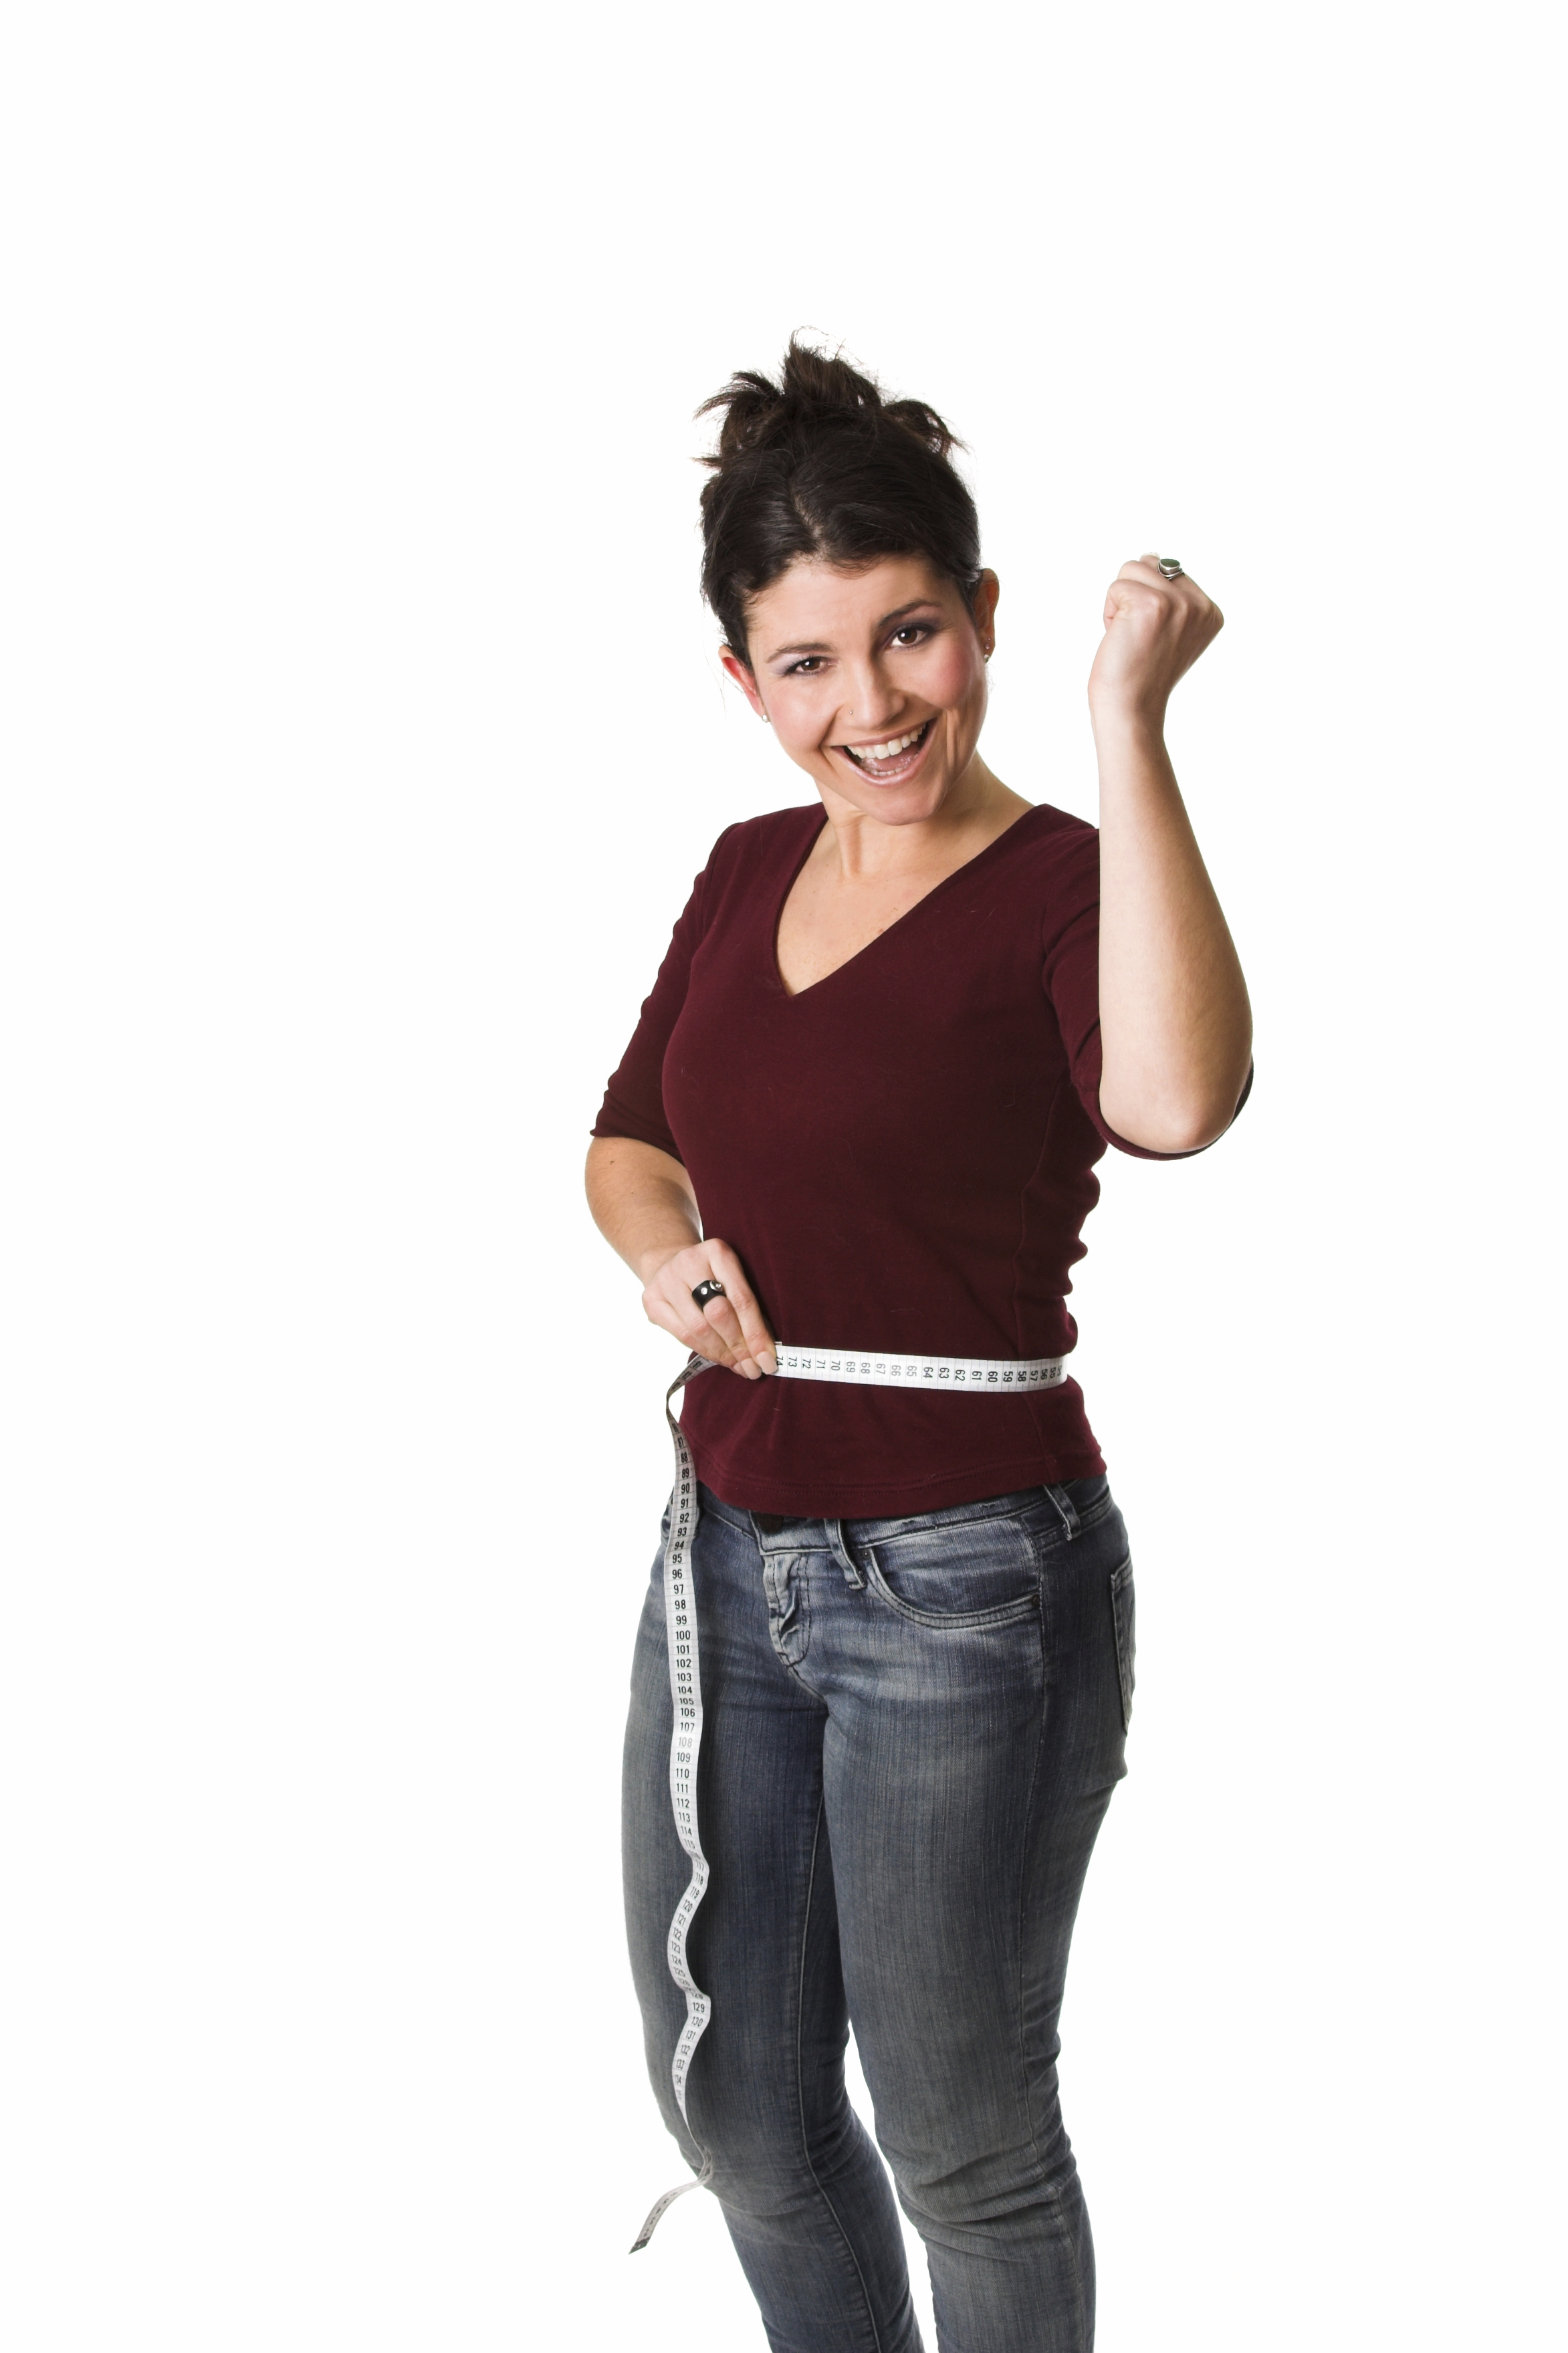 Superbowl Slim Downs, Get A Touchdown On Your Excess Weight Reduction!